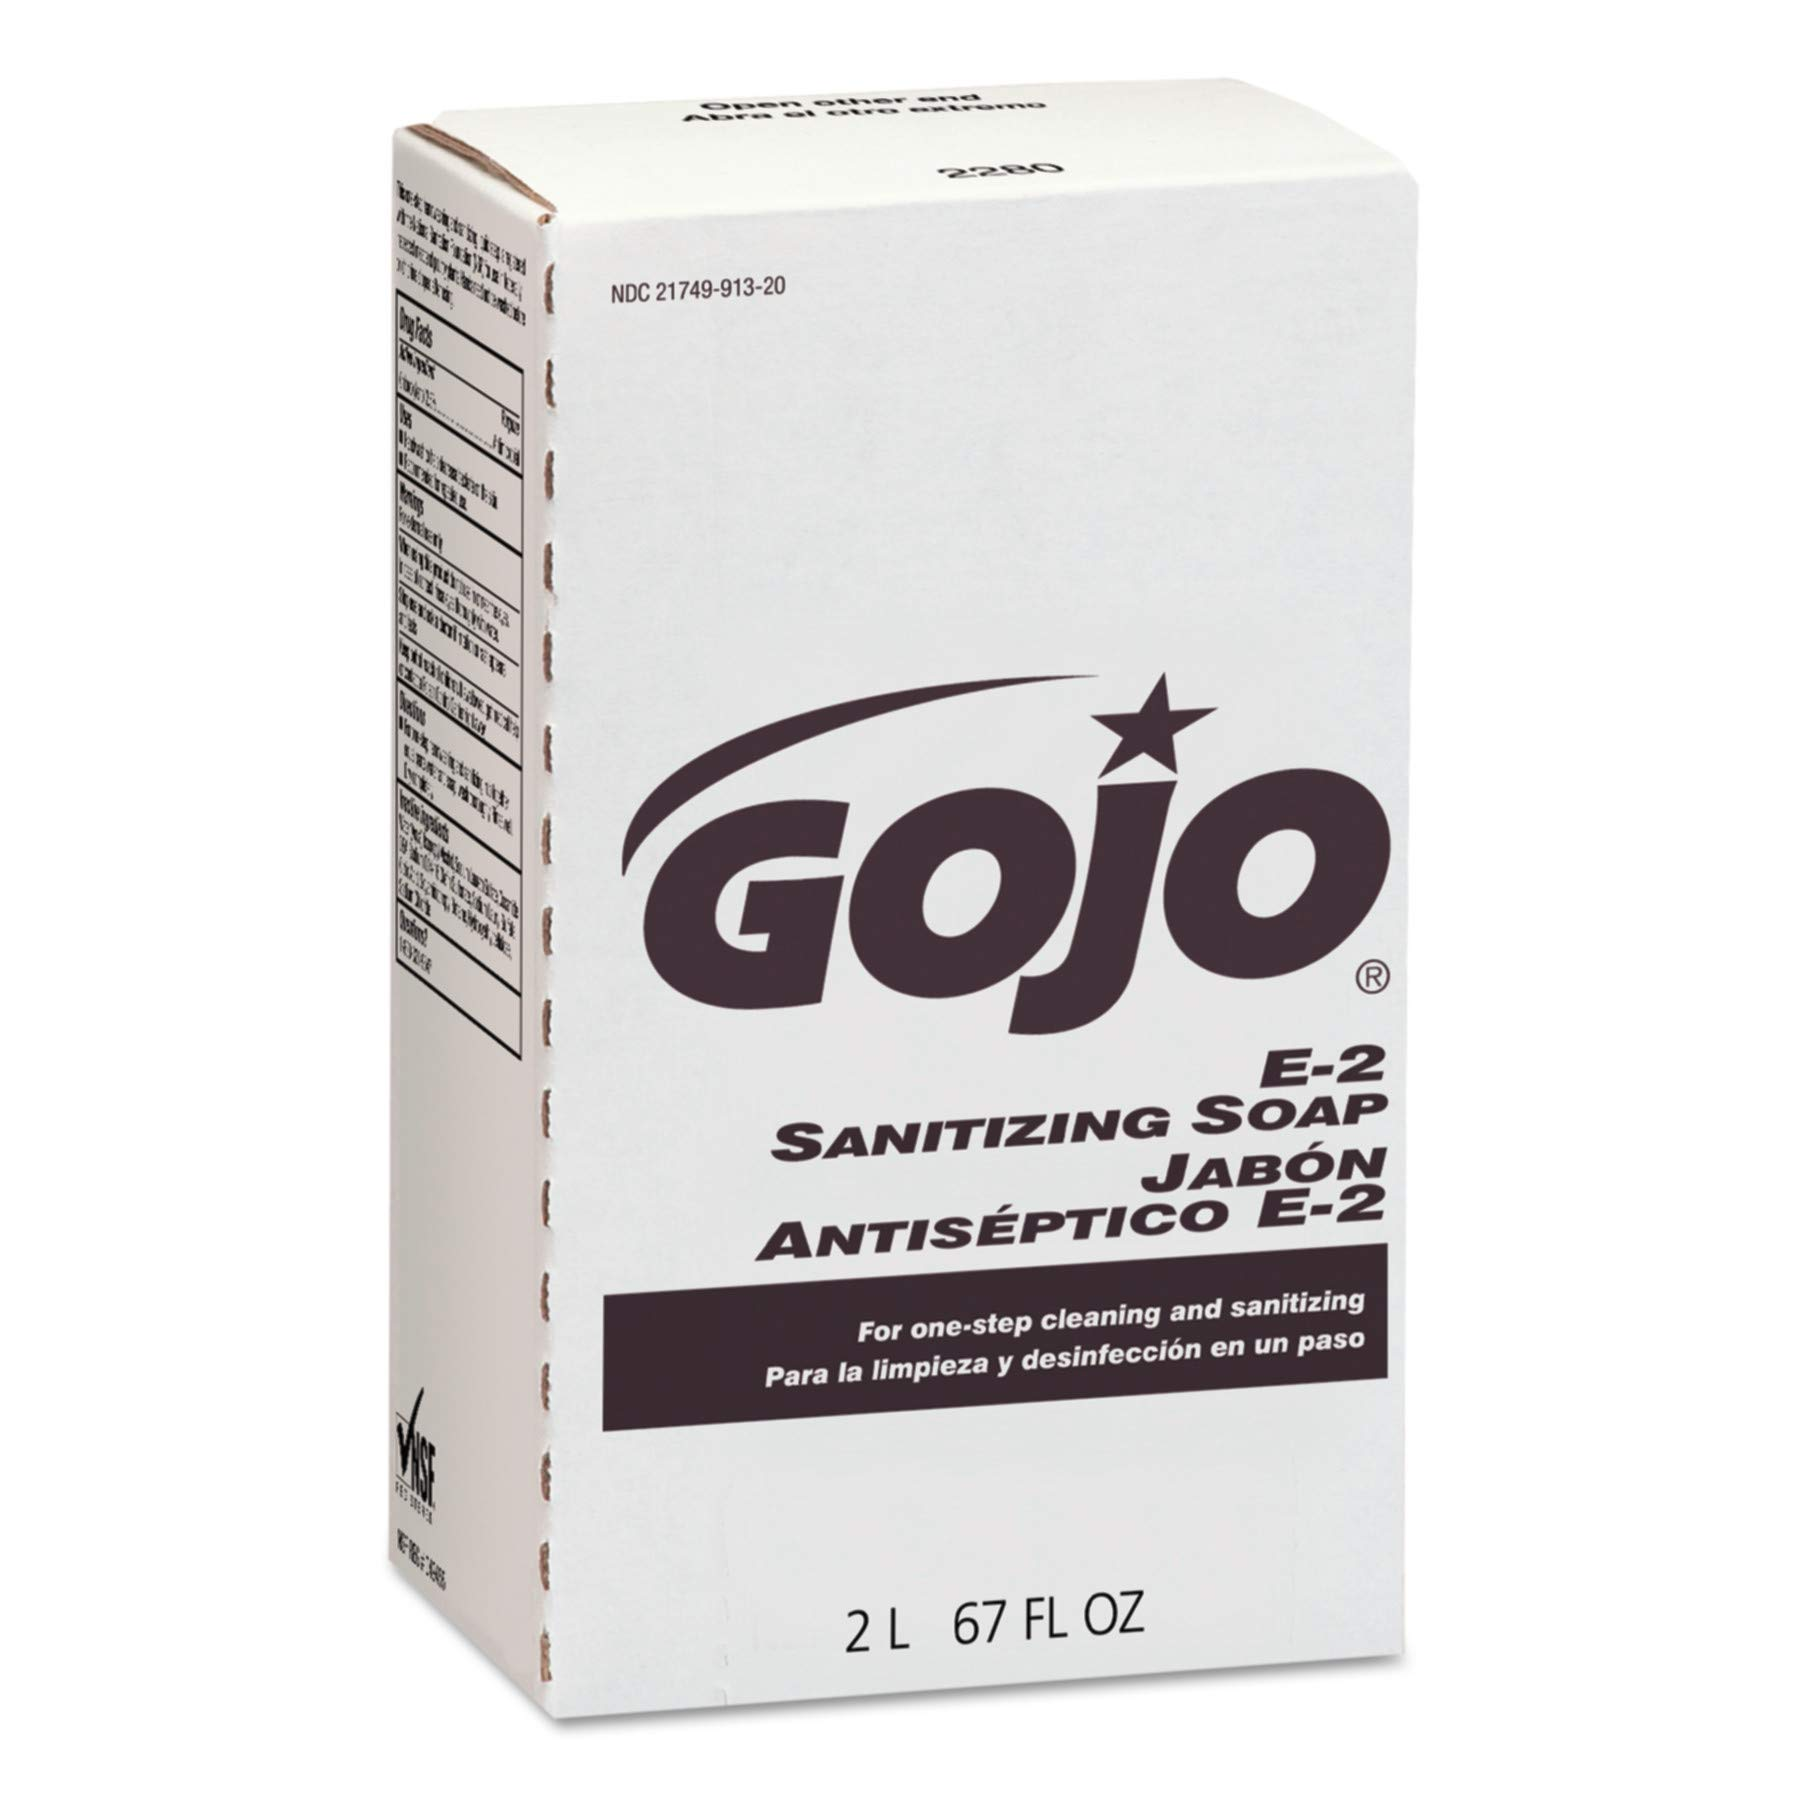 GOJO NXT E2 Sanitizing Lotion Soap, Fragrance Free, 2000 mL Lotion Soap Refill for GOJO NXT Push-Style Dispenser (Case of 4) - 2280-04